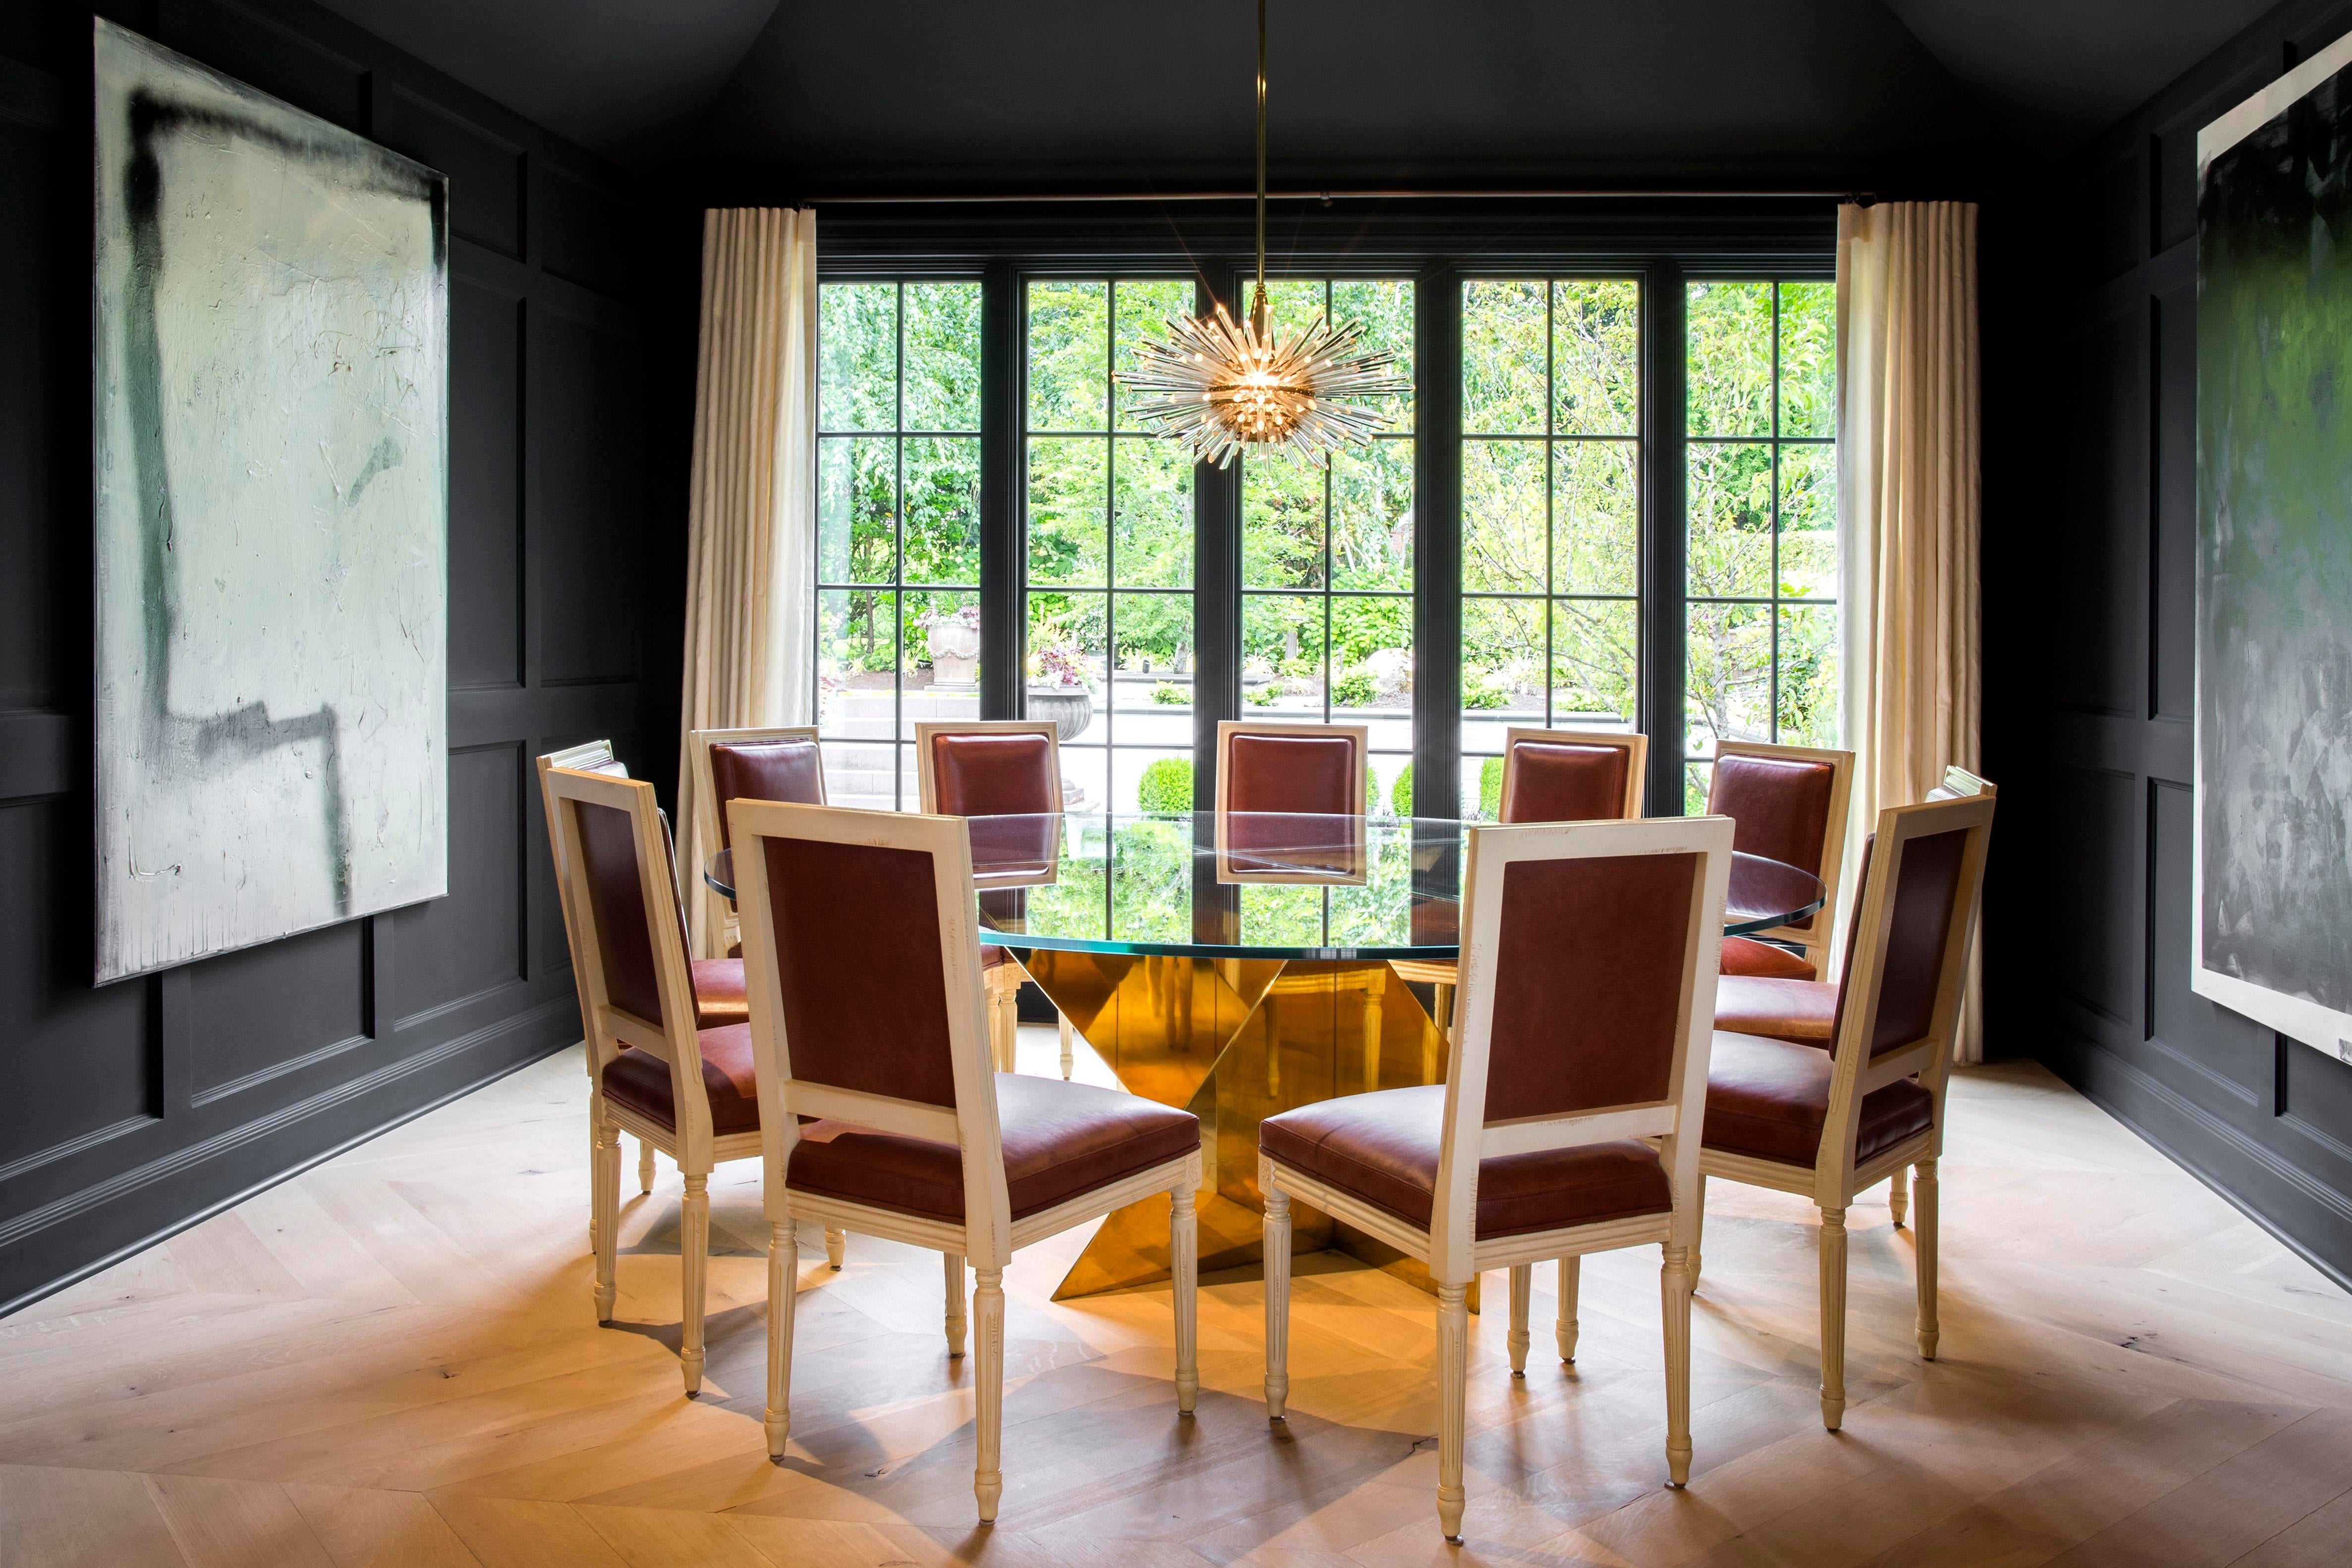 Dining Room With Louis XVI Style Dining Chairs From Artistic Frame. Nate  Berkus Associates